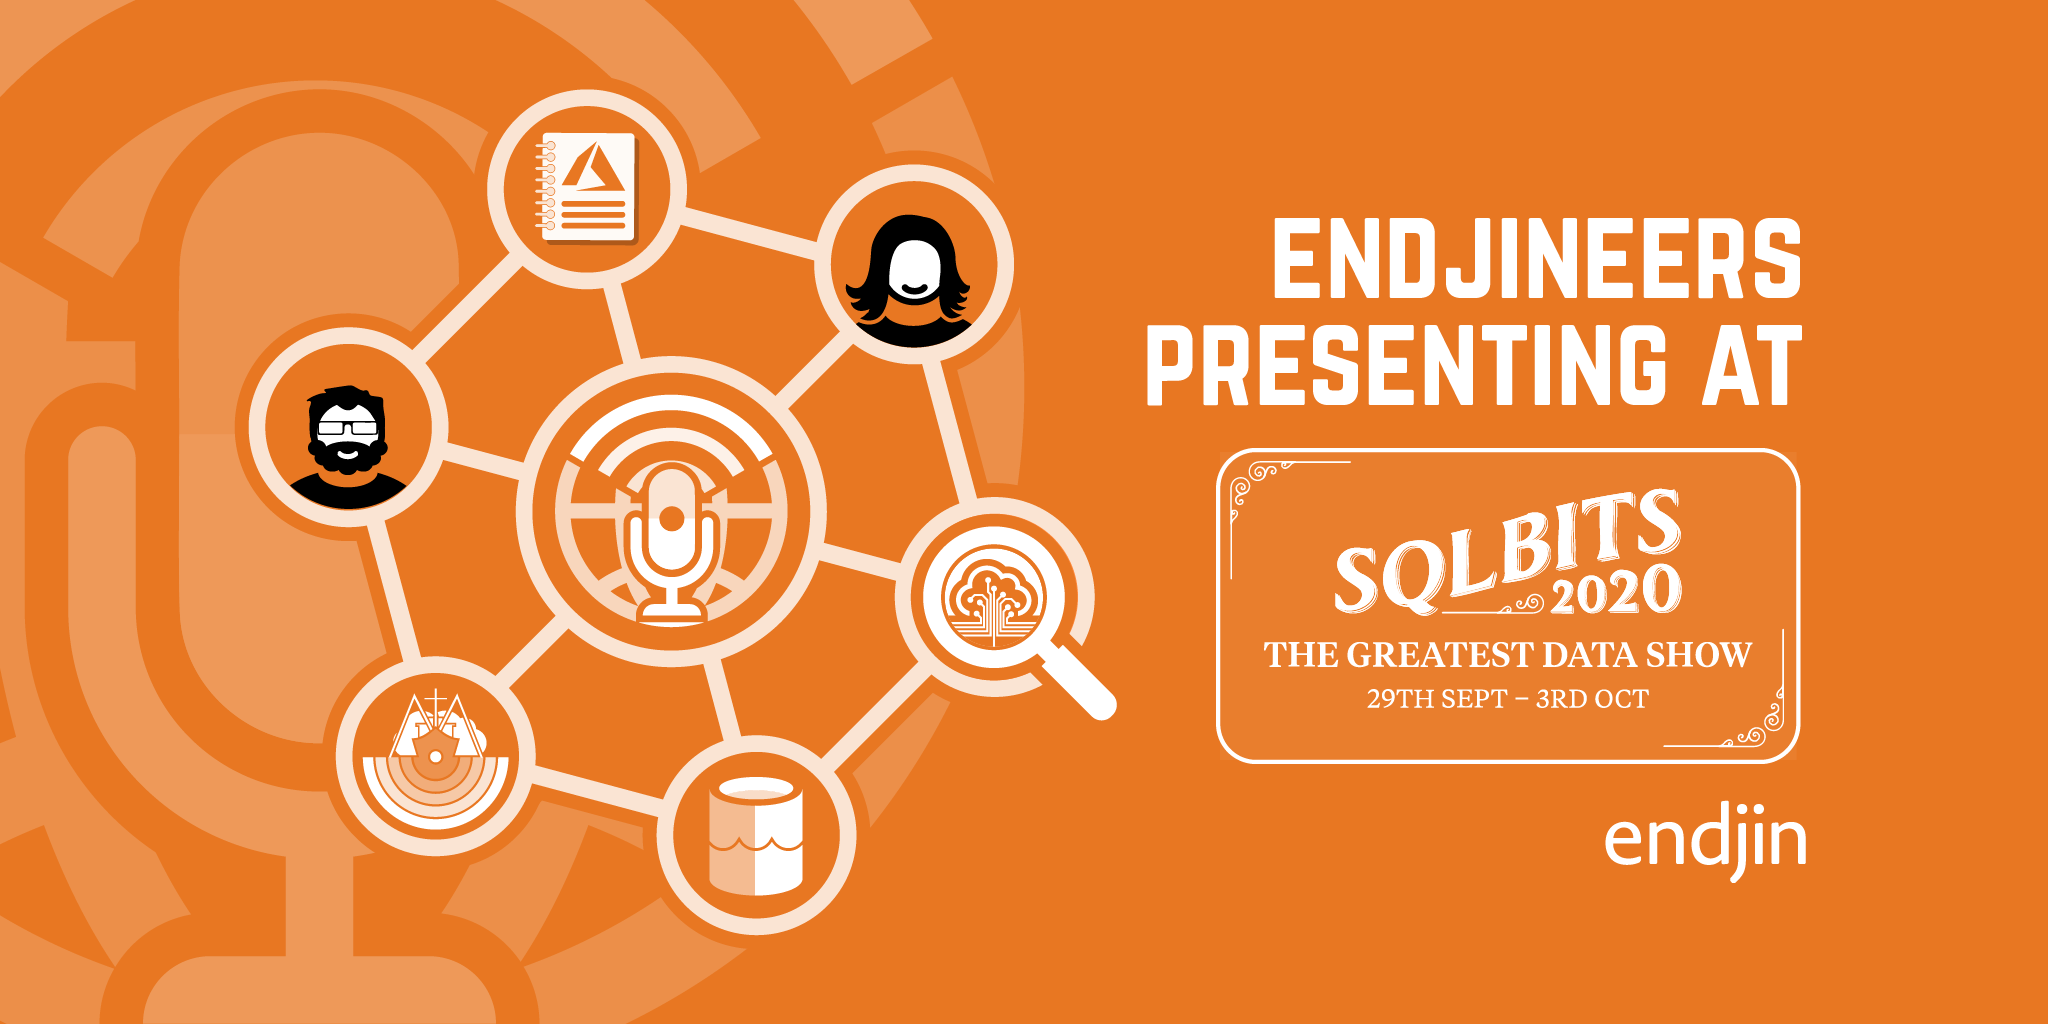 Endjineers presenting at SQLBits 2020!